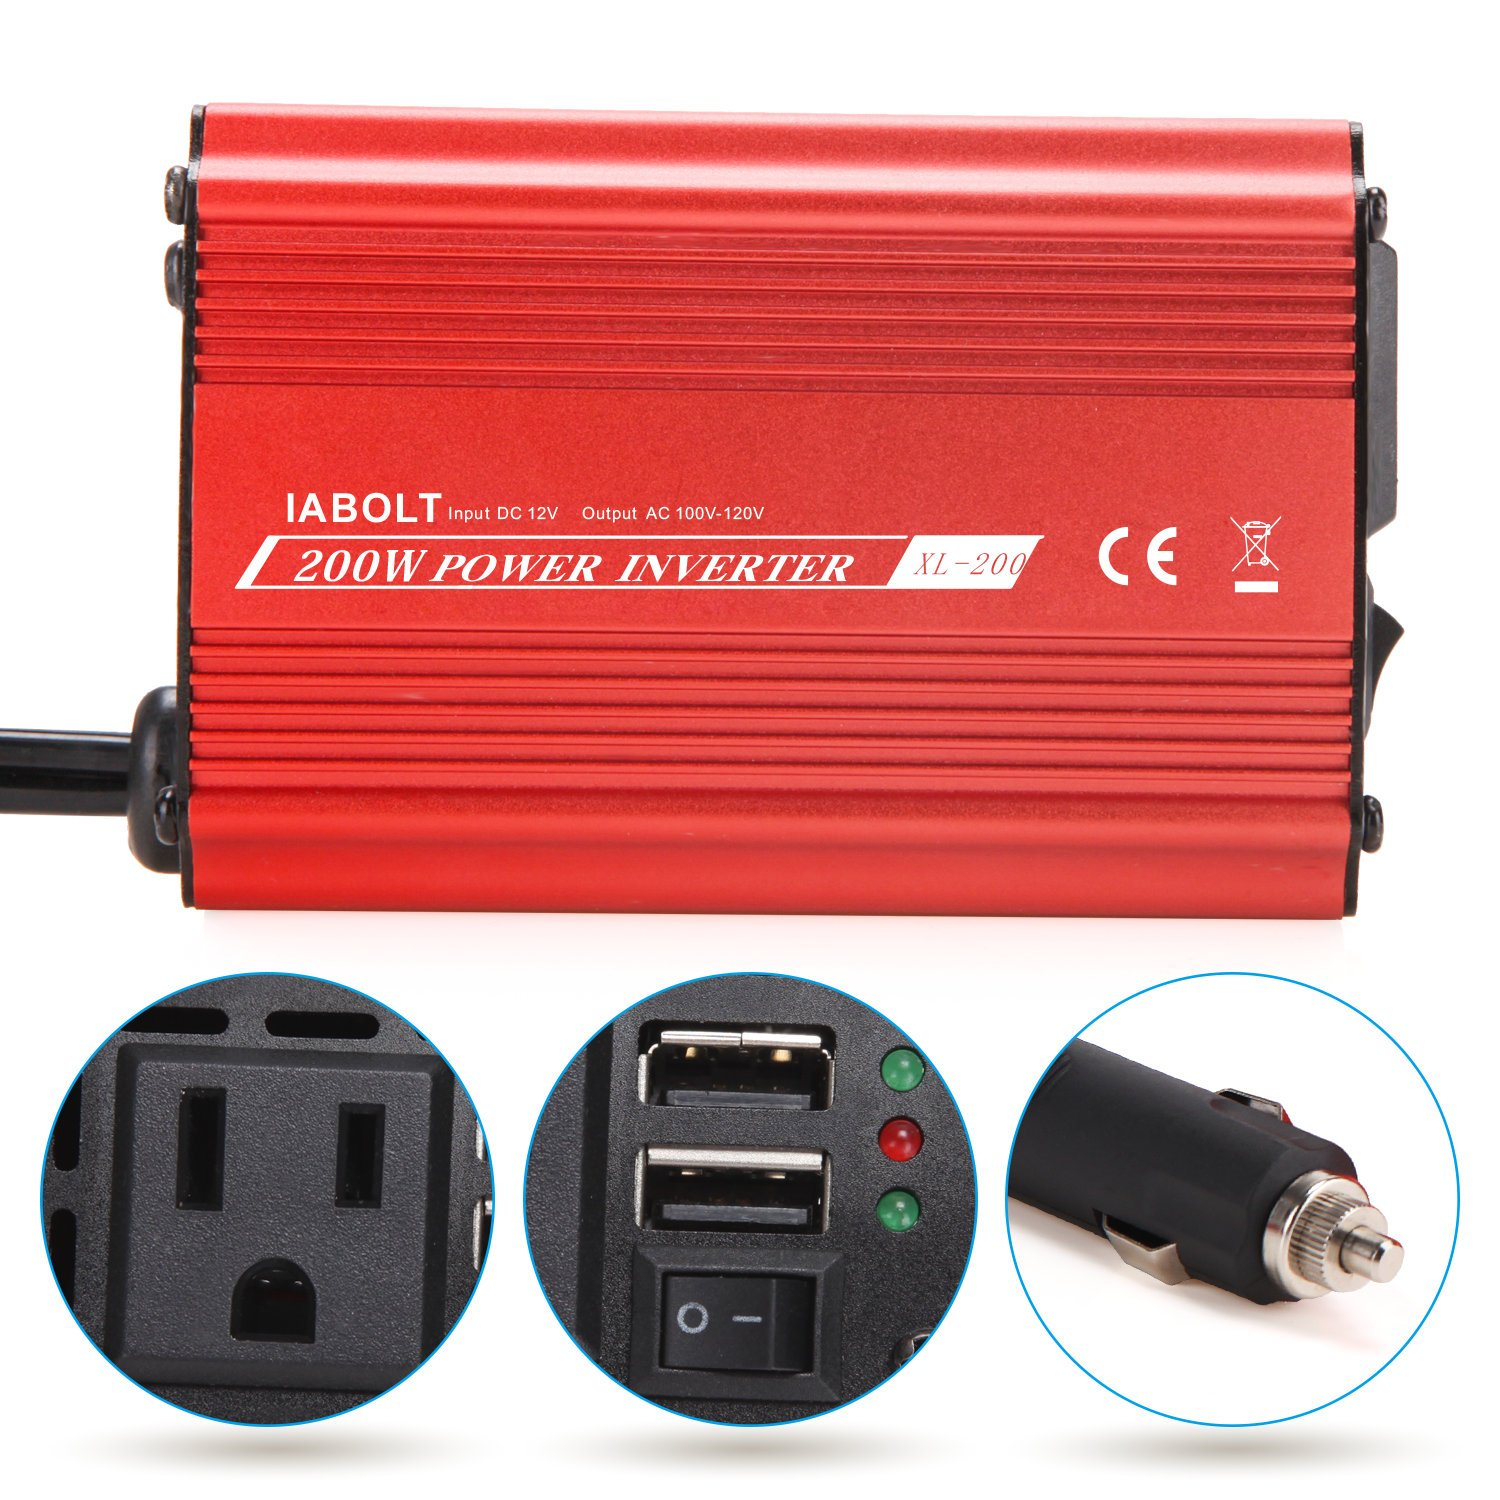 Iabolt 200w Car Power Inverter Dc 12v To Ac 110v L200 Constant Voltage Battery Charger Circuit This Converter Usb Ports Adapter Outlets Garden Outdoor